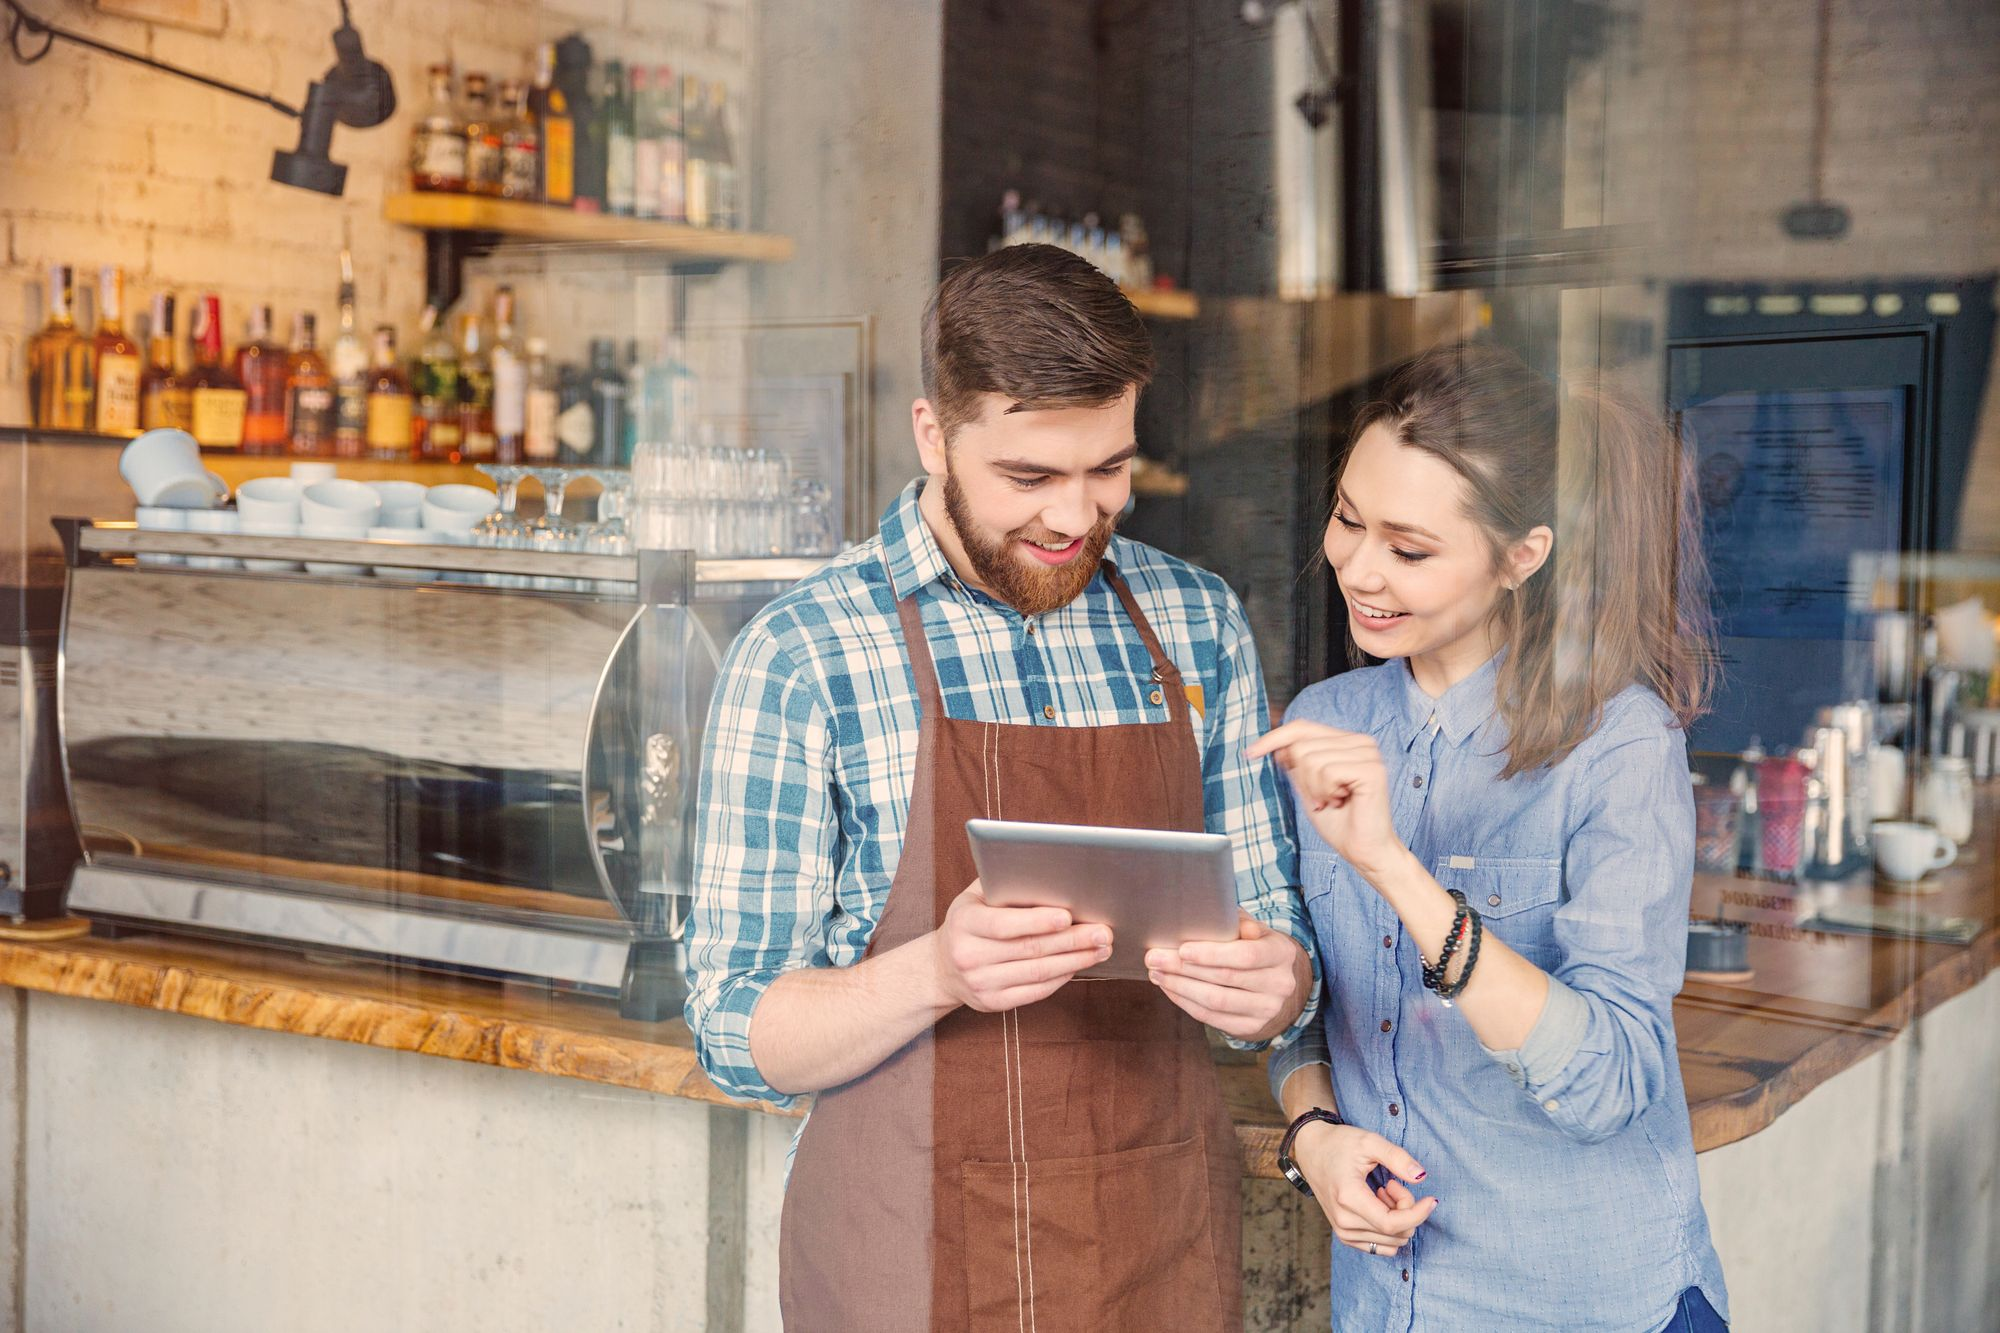 Restaurants are wiser to smart options for customer loyalty and delivery post-pandemic